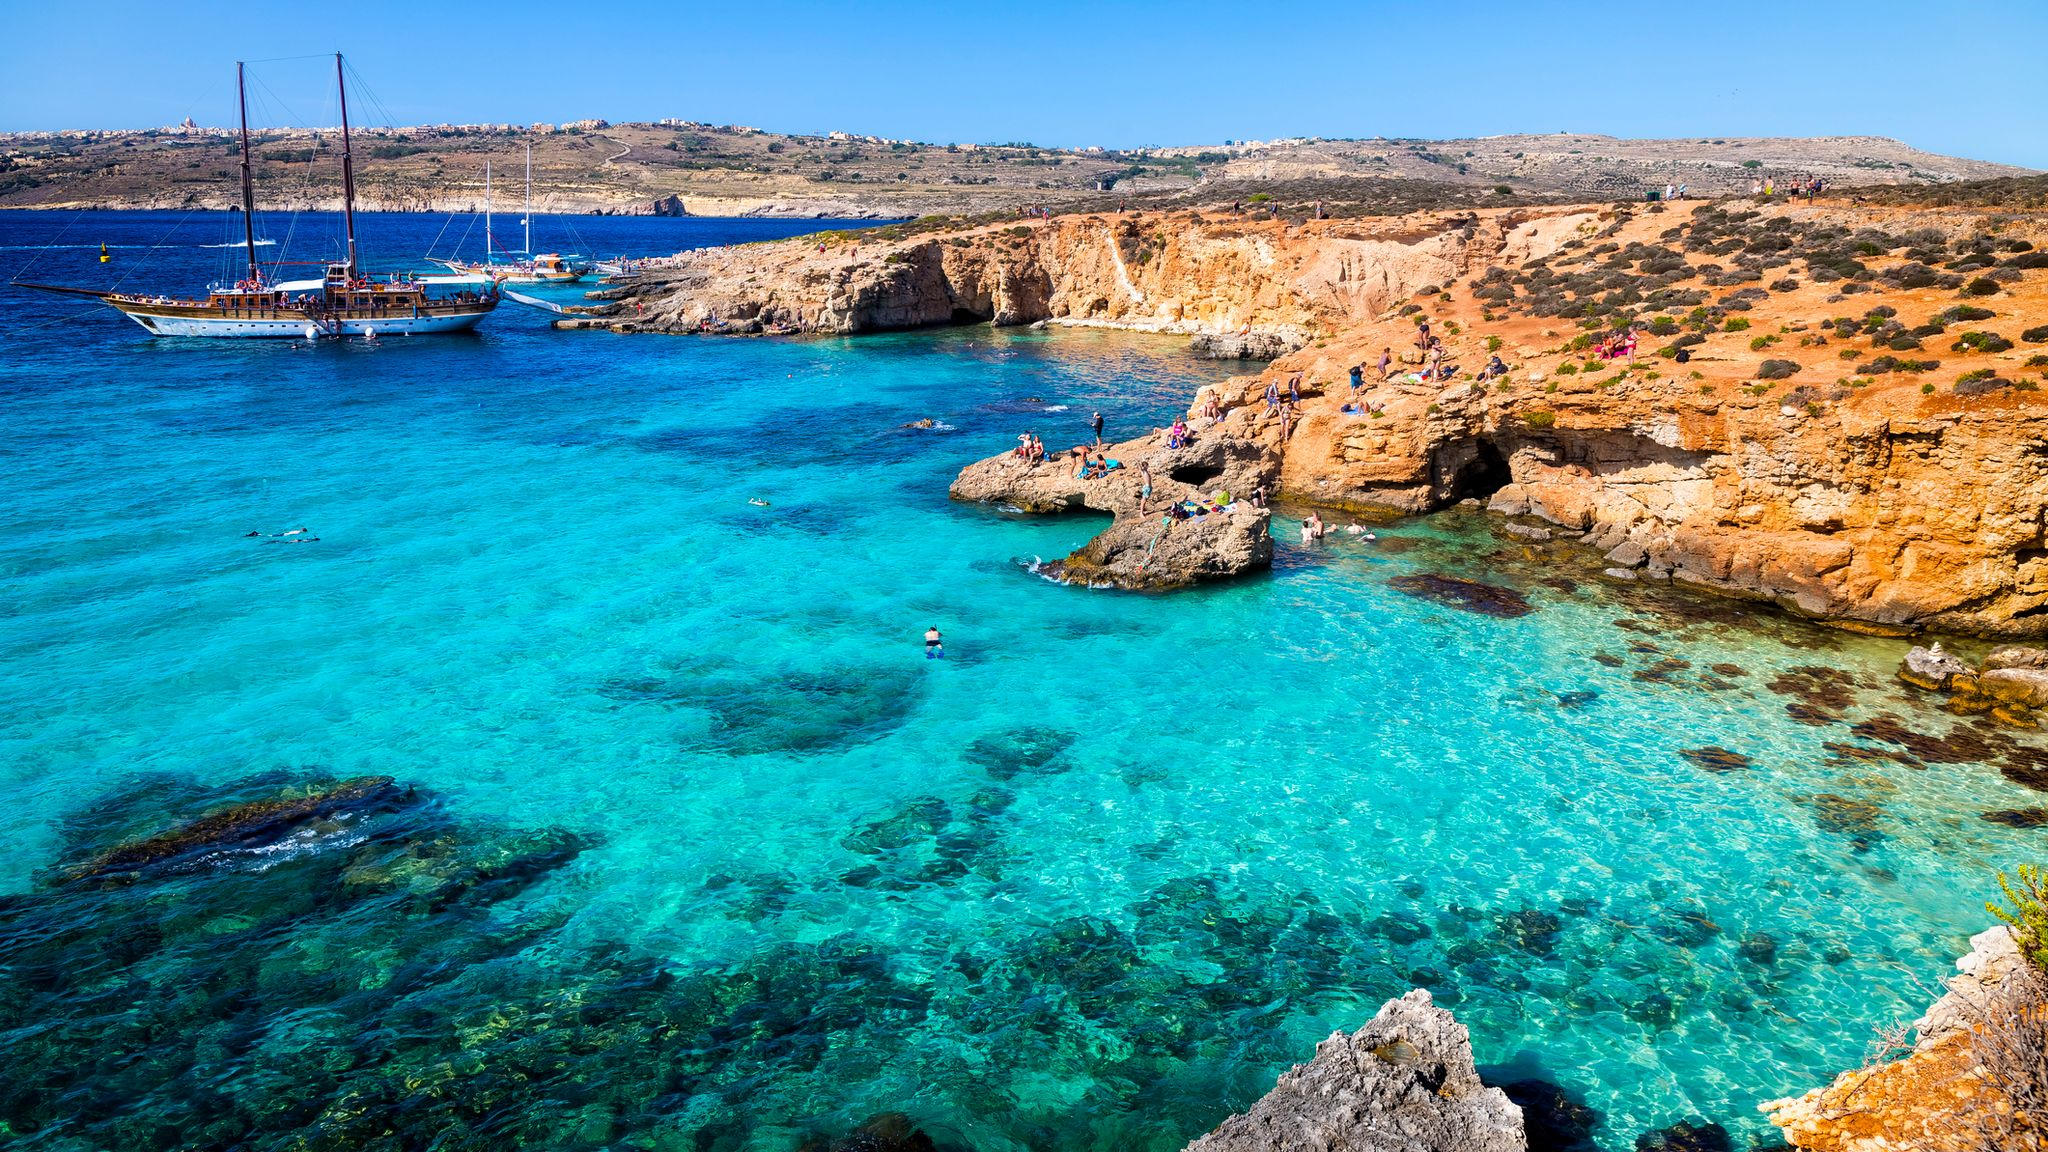 COVID-19: Malta requires proof of vaccination before allowing visitors to  enter | World News | Sky News